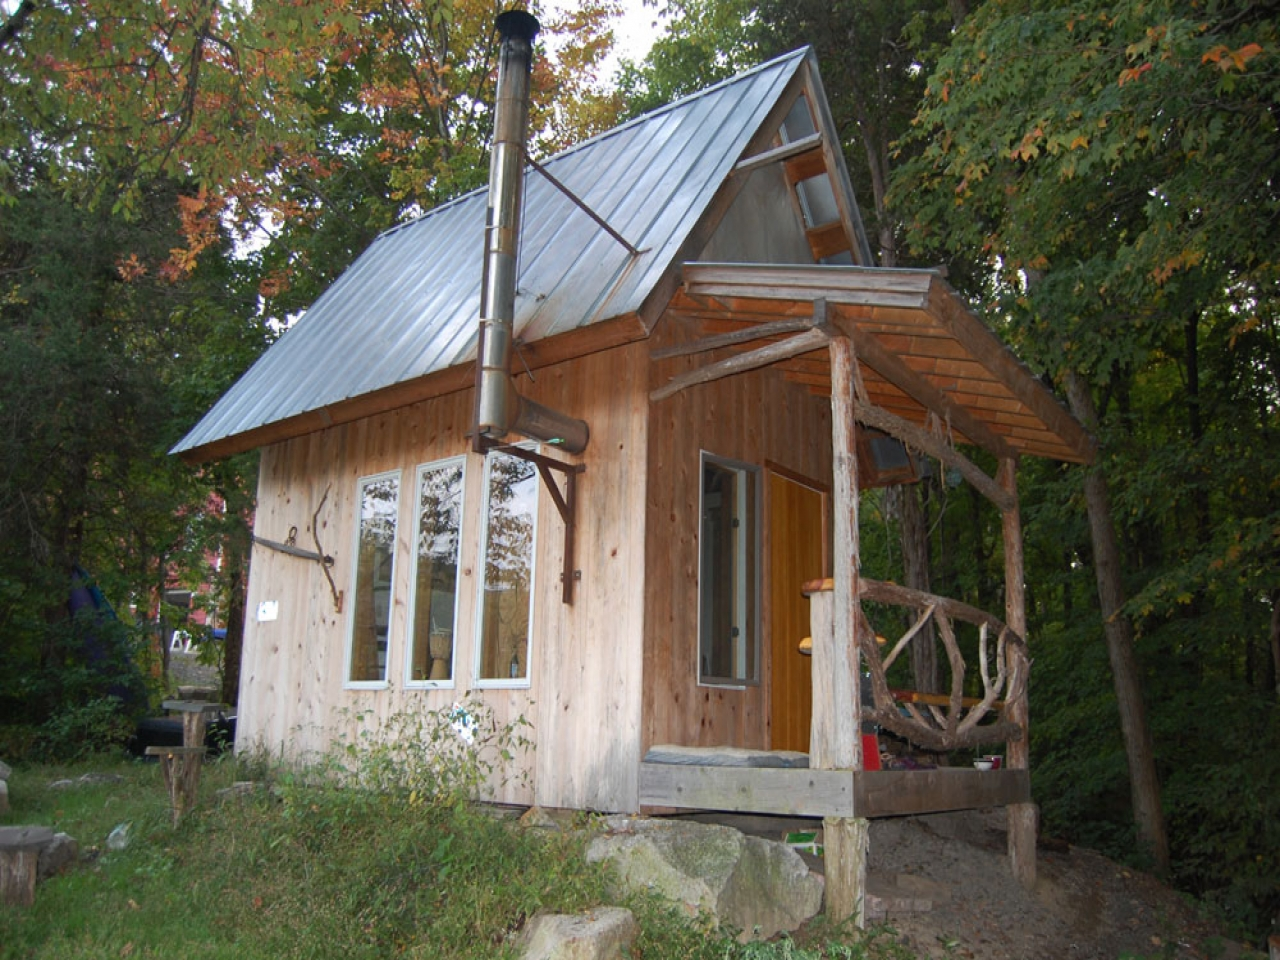 Tiny Victorian House Plans Small Cabins Tiny Houses Homes: Small Cabins Tiny Houses In New York Tiny House Floor